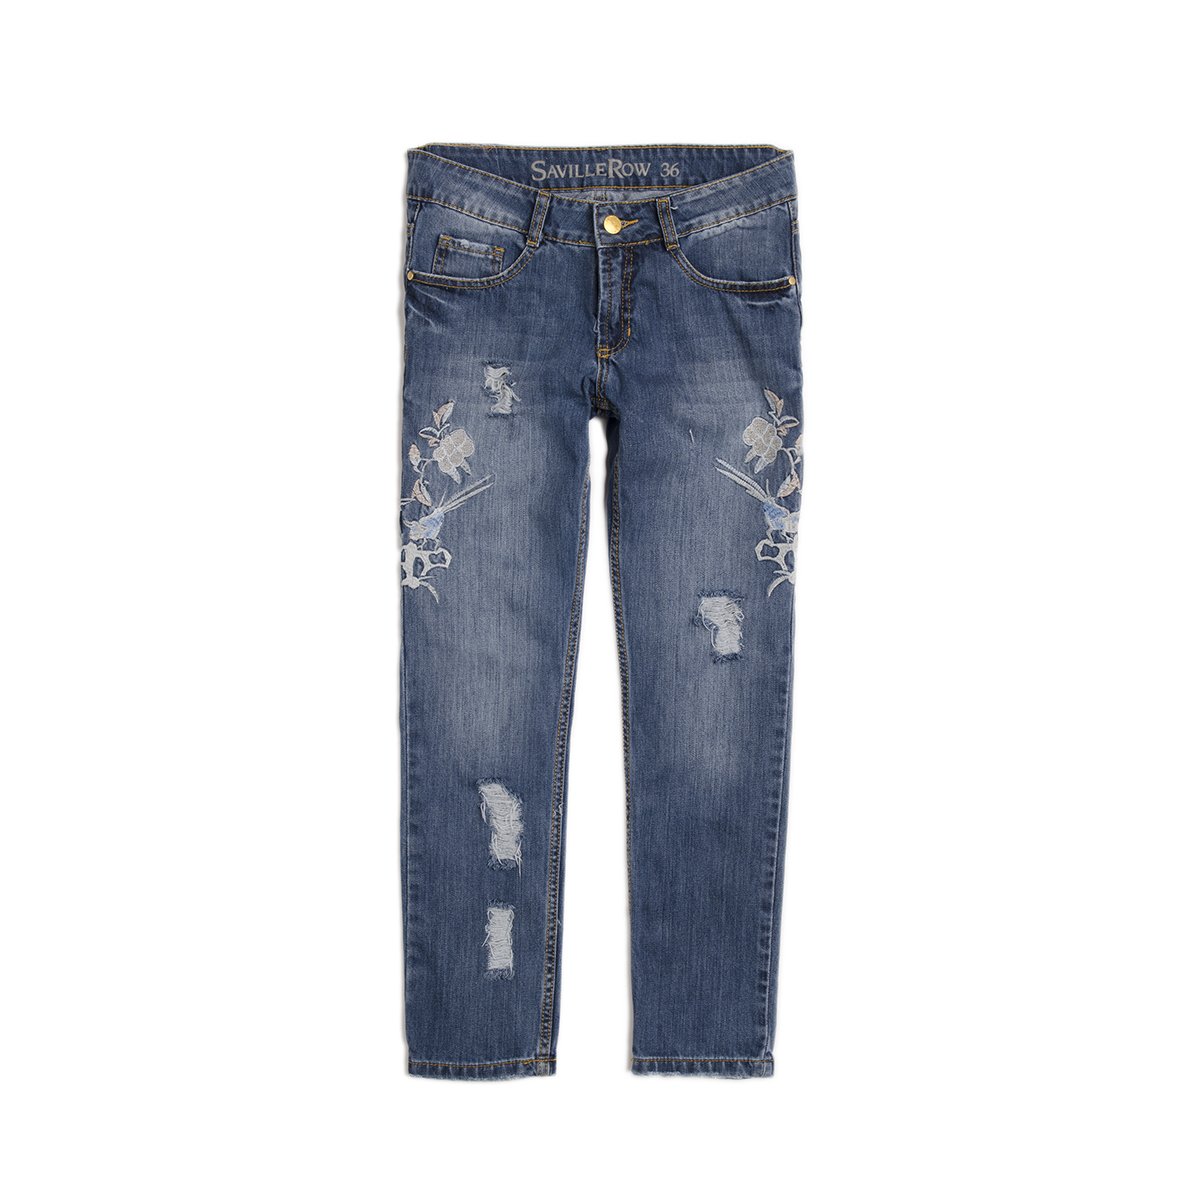 JEANS 100% ALG. BORDADO CHINO AZUL MEDIO